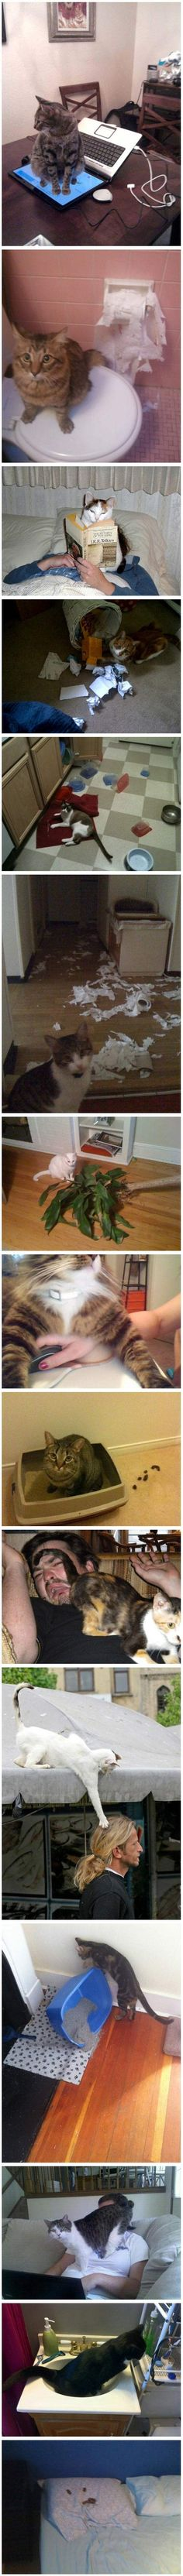 Cats are jerks. Hahahahahah love it! @Darcy Fitzpatrick Leischner